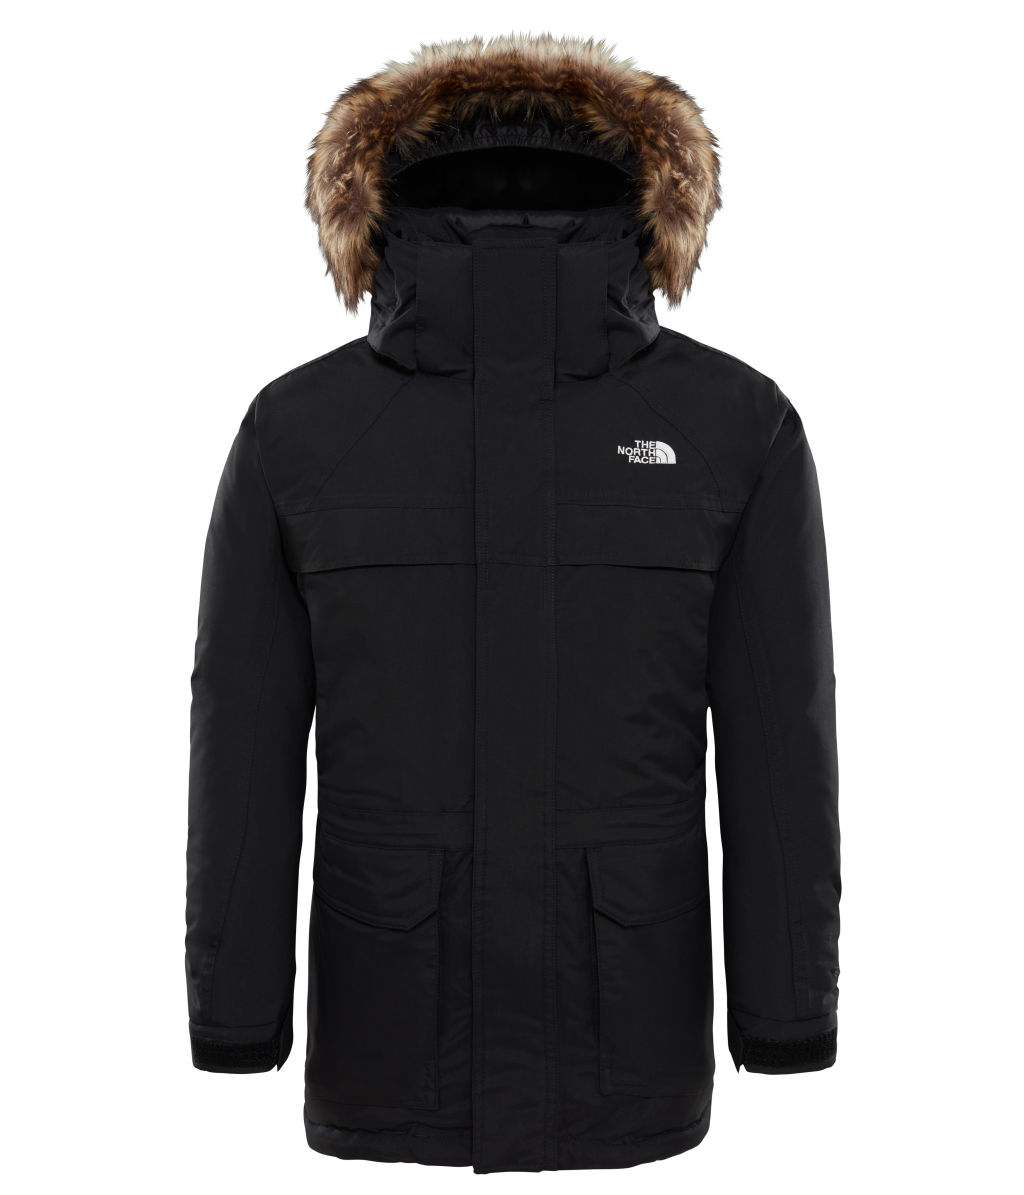 The North Face MC Murdo Parka Jr